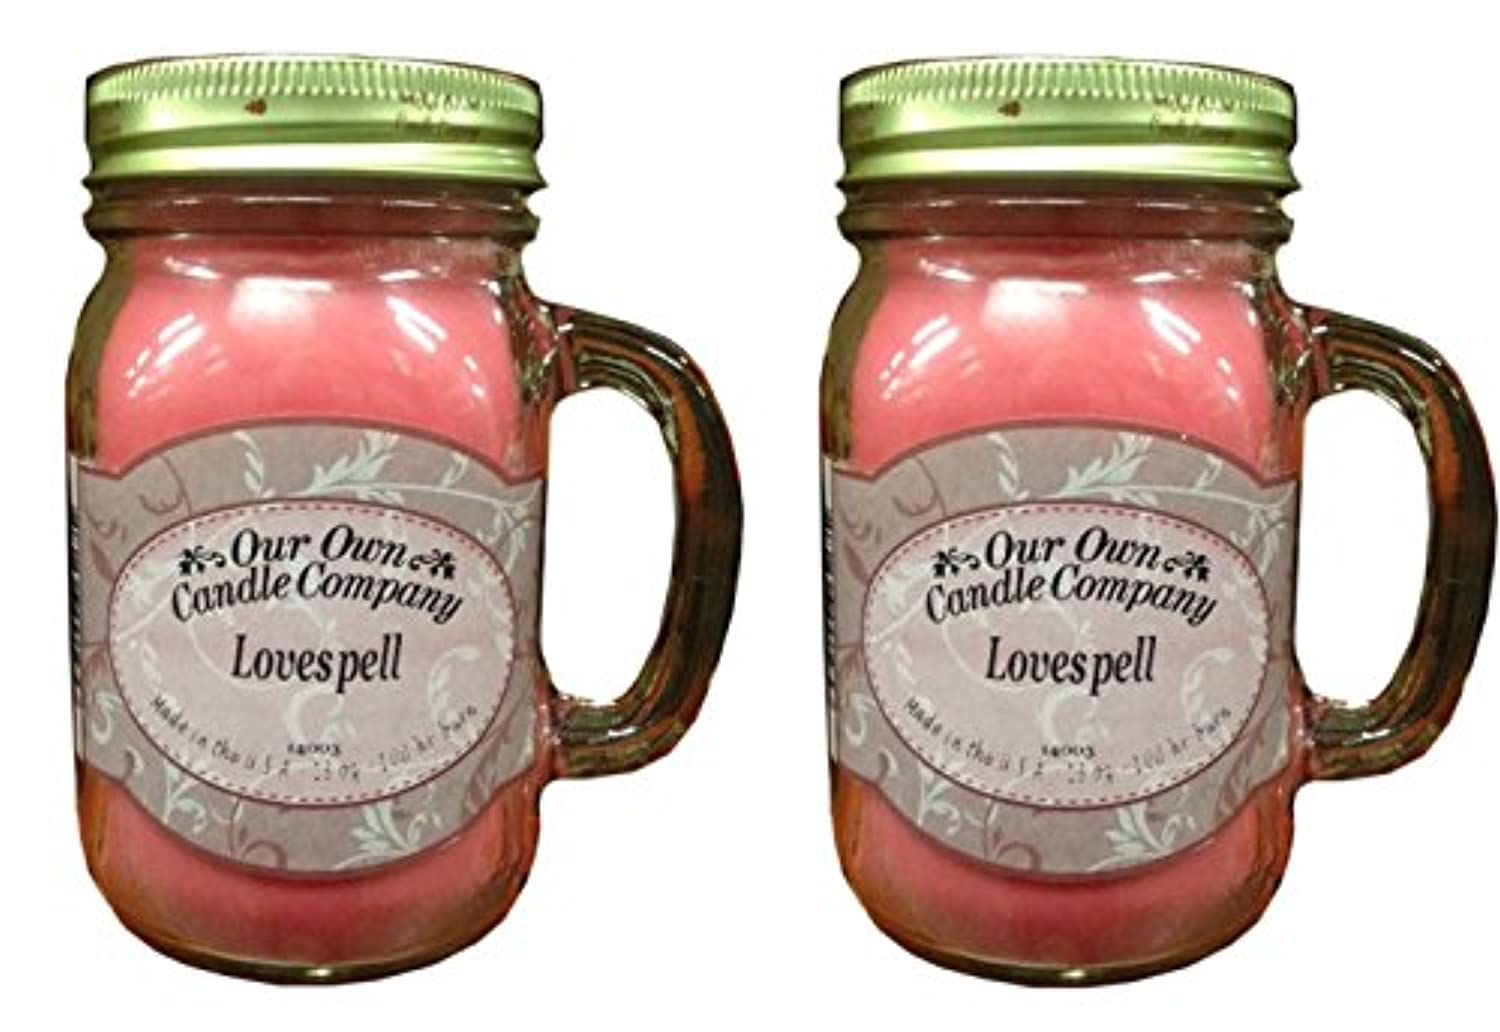 Lovespell 13oz 2 - Pack香り大豆ブレンドキャンドルin Mason Jars Made by Our Own Candle Co in usa-100 HR BURN時間あたりCandle